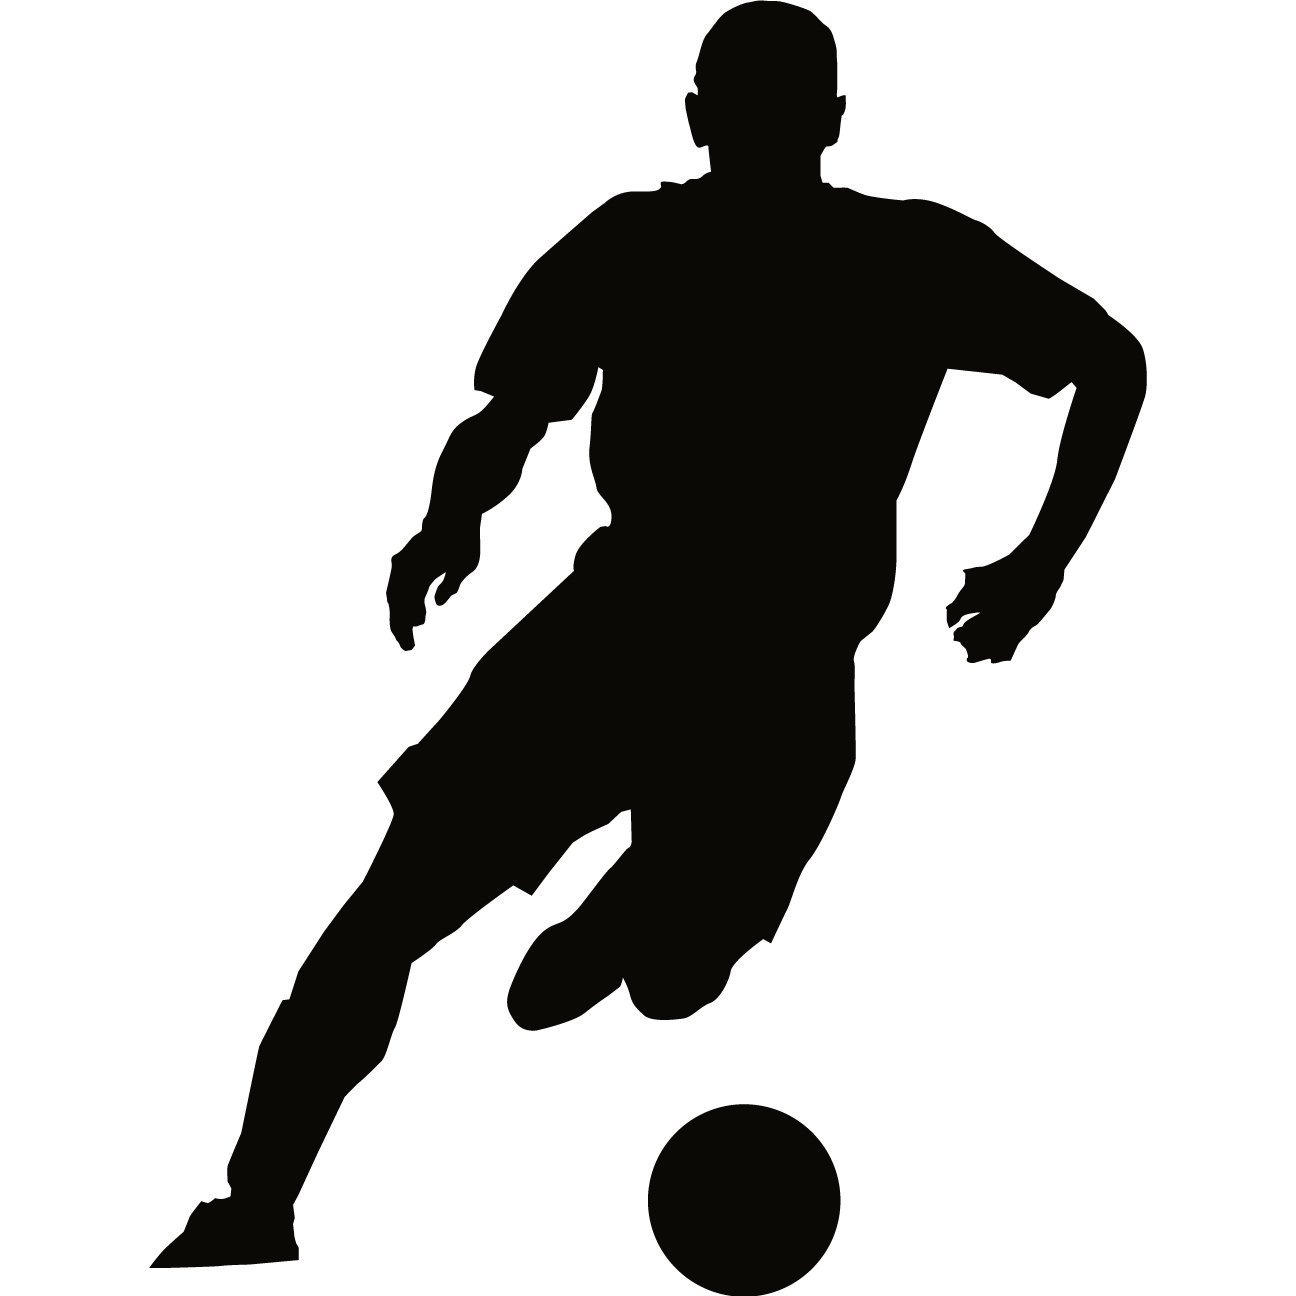 Soccer Silhouette Stock Images RoyaltyFree Images